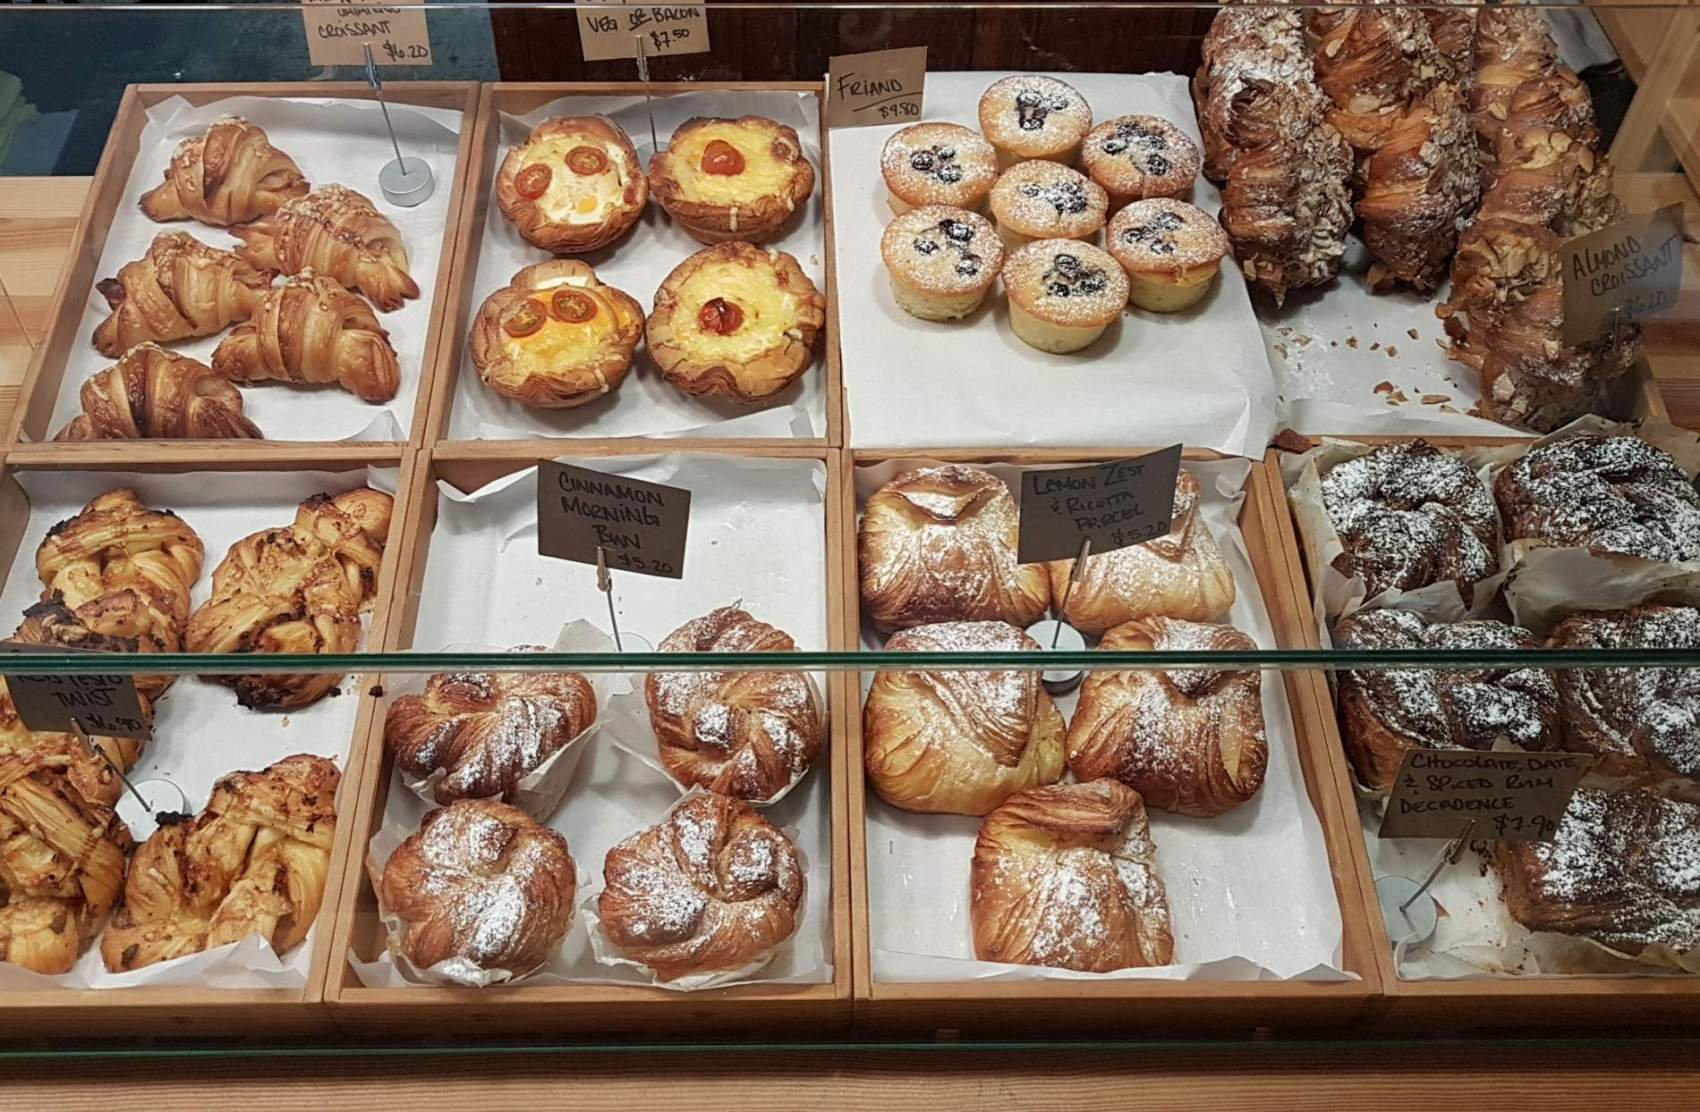 Goods pastries